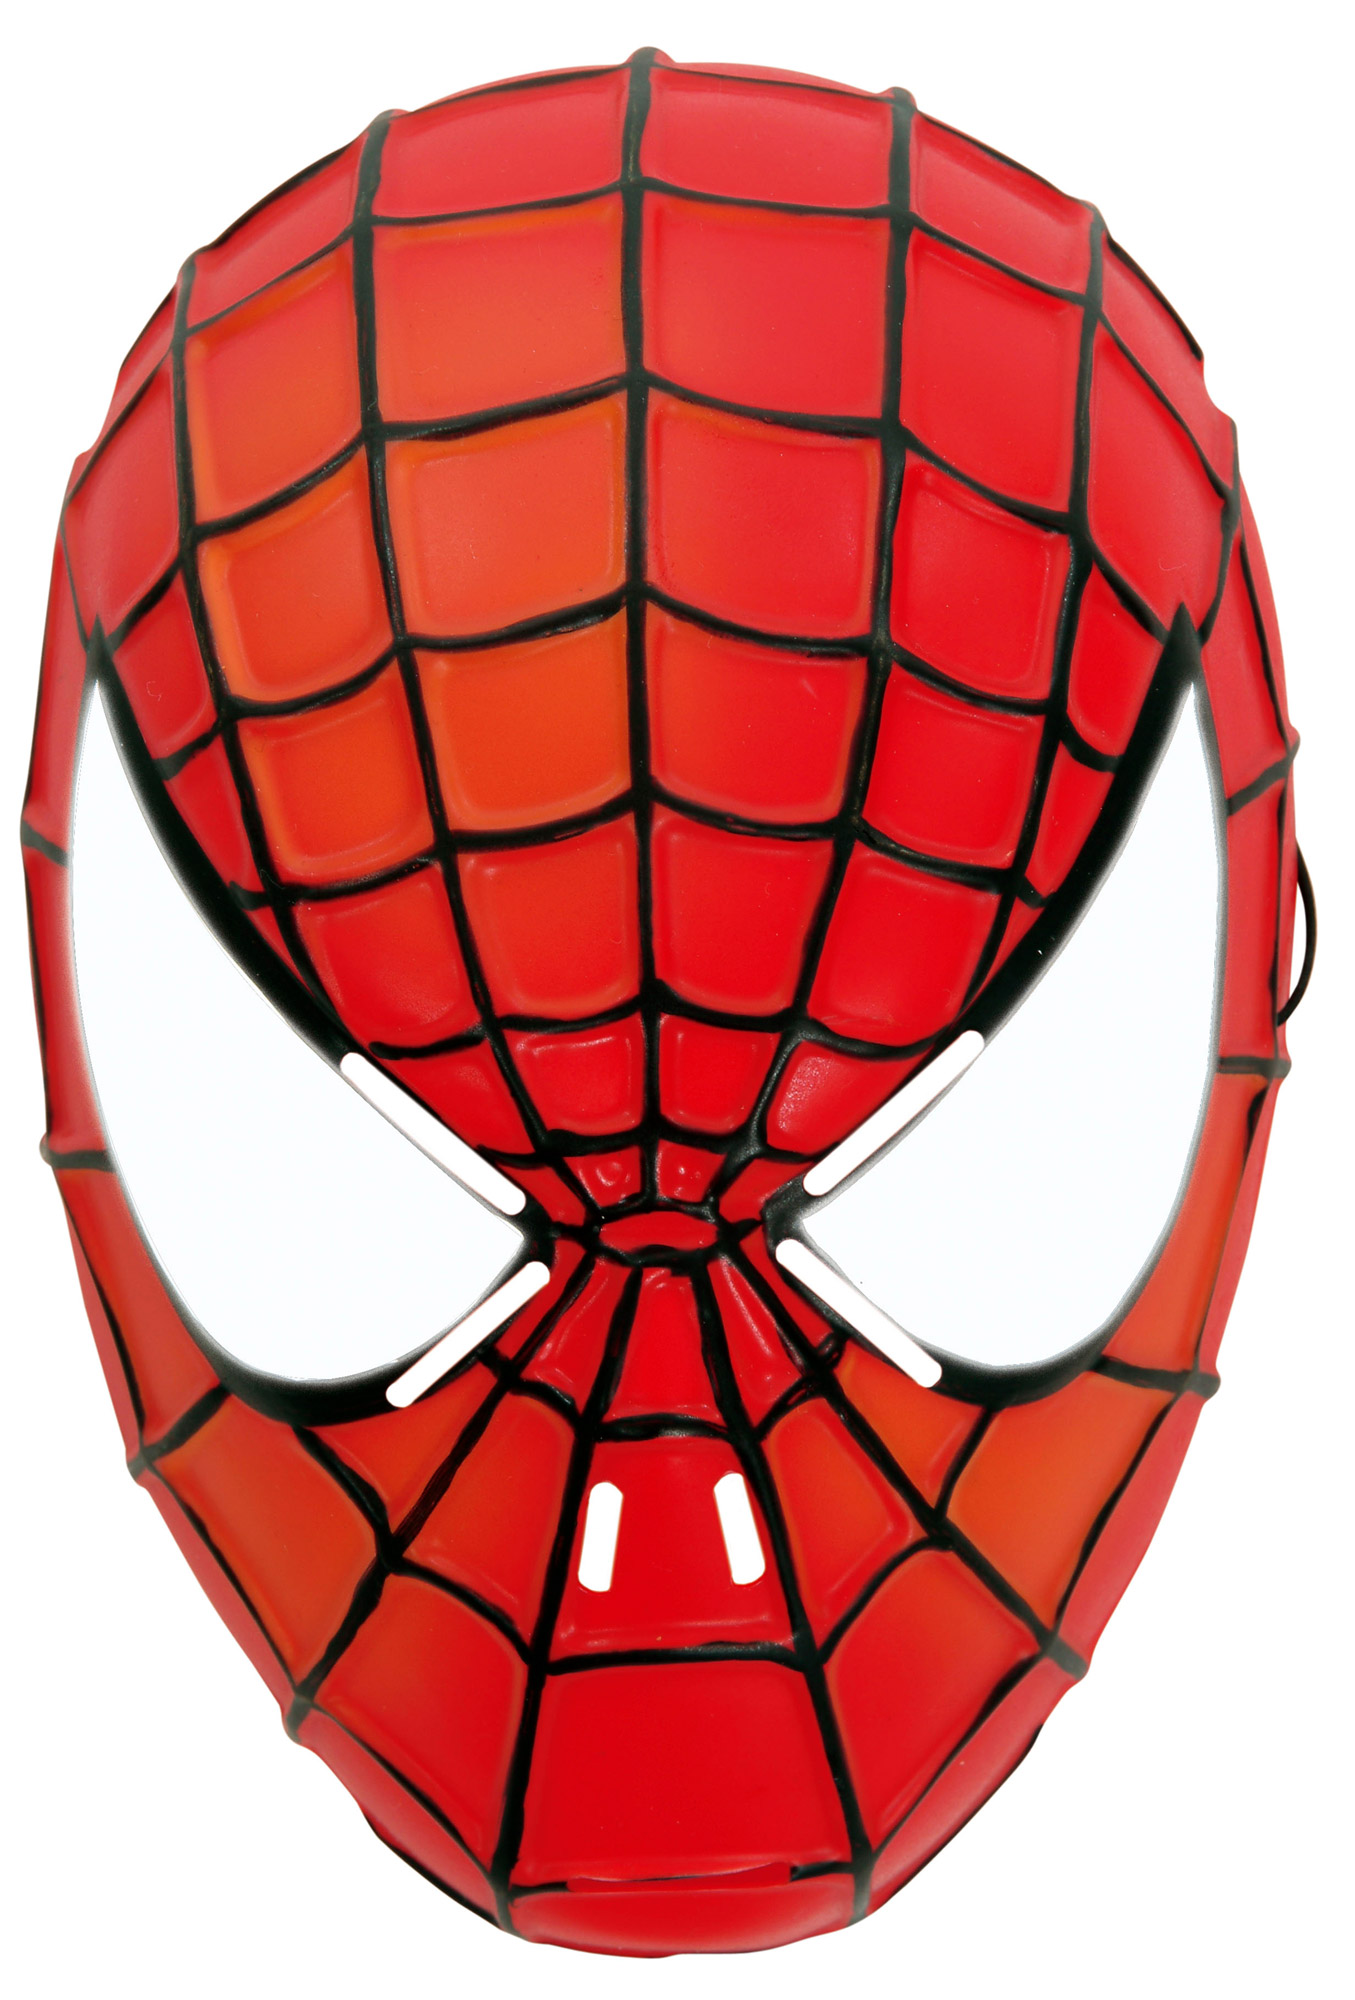 how to make a real spiderman mask